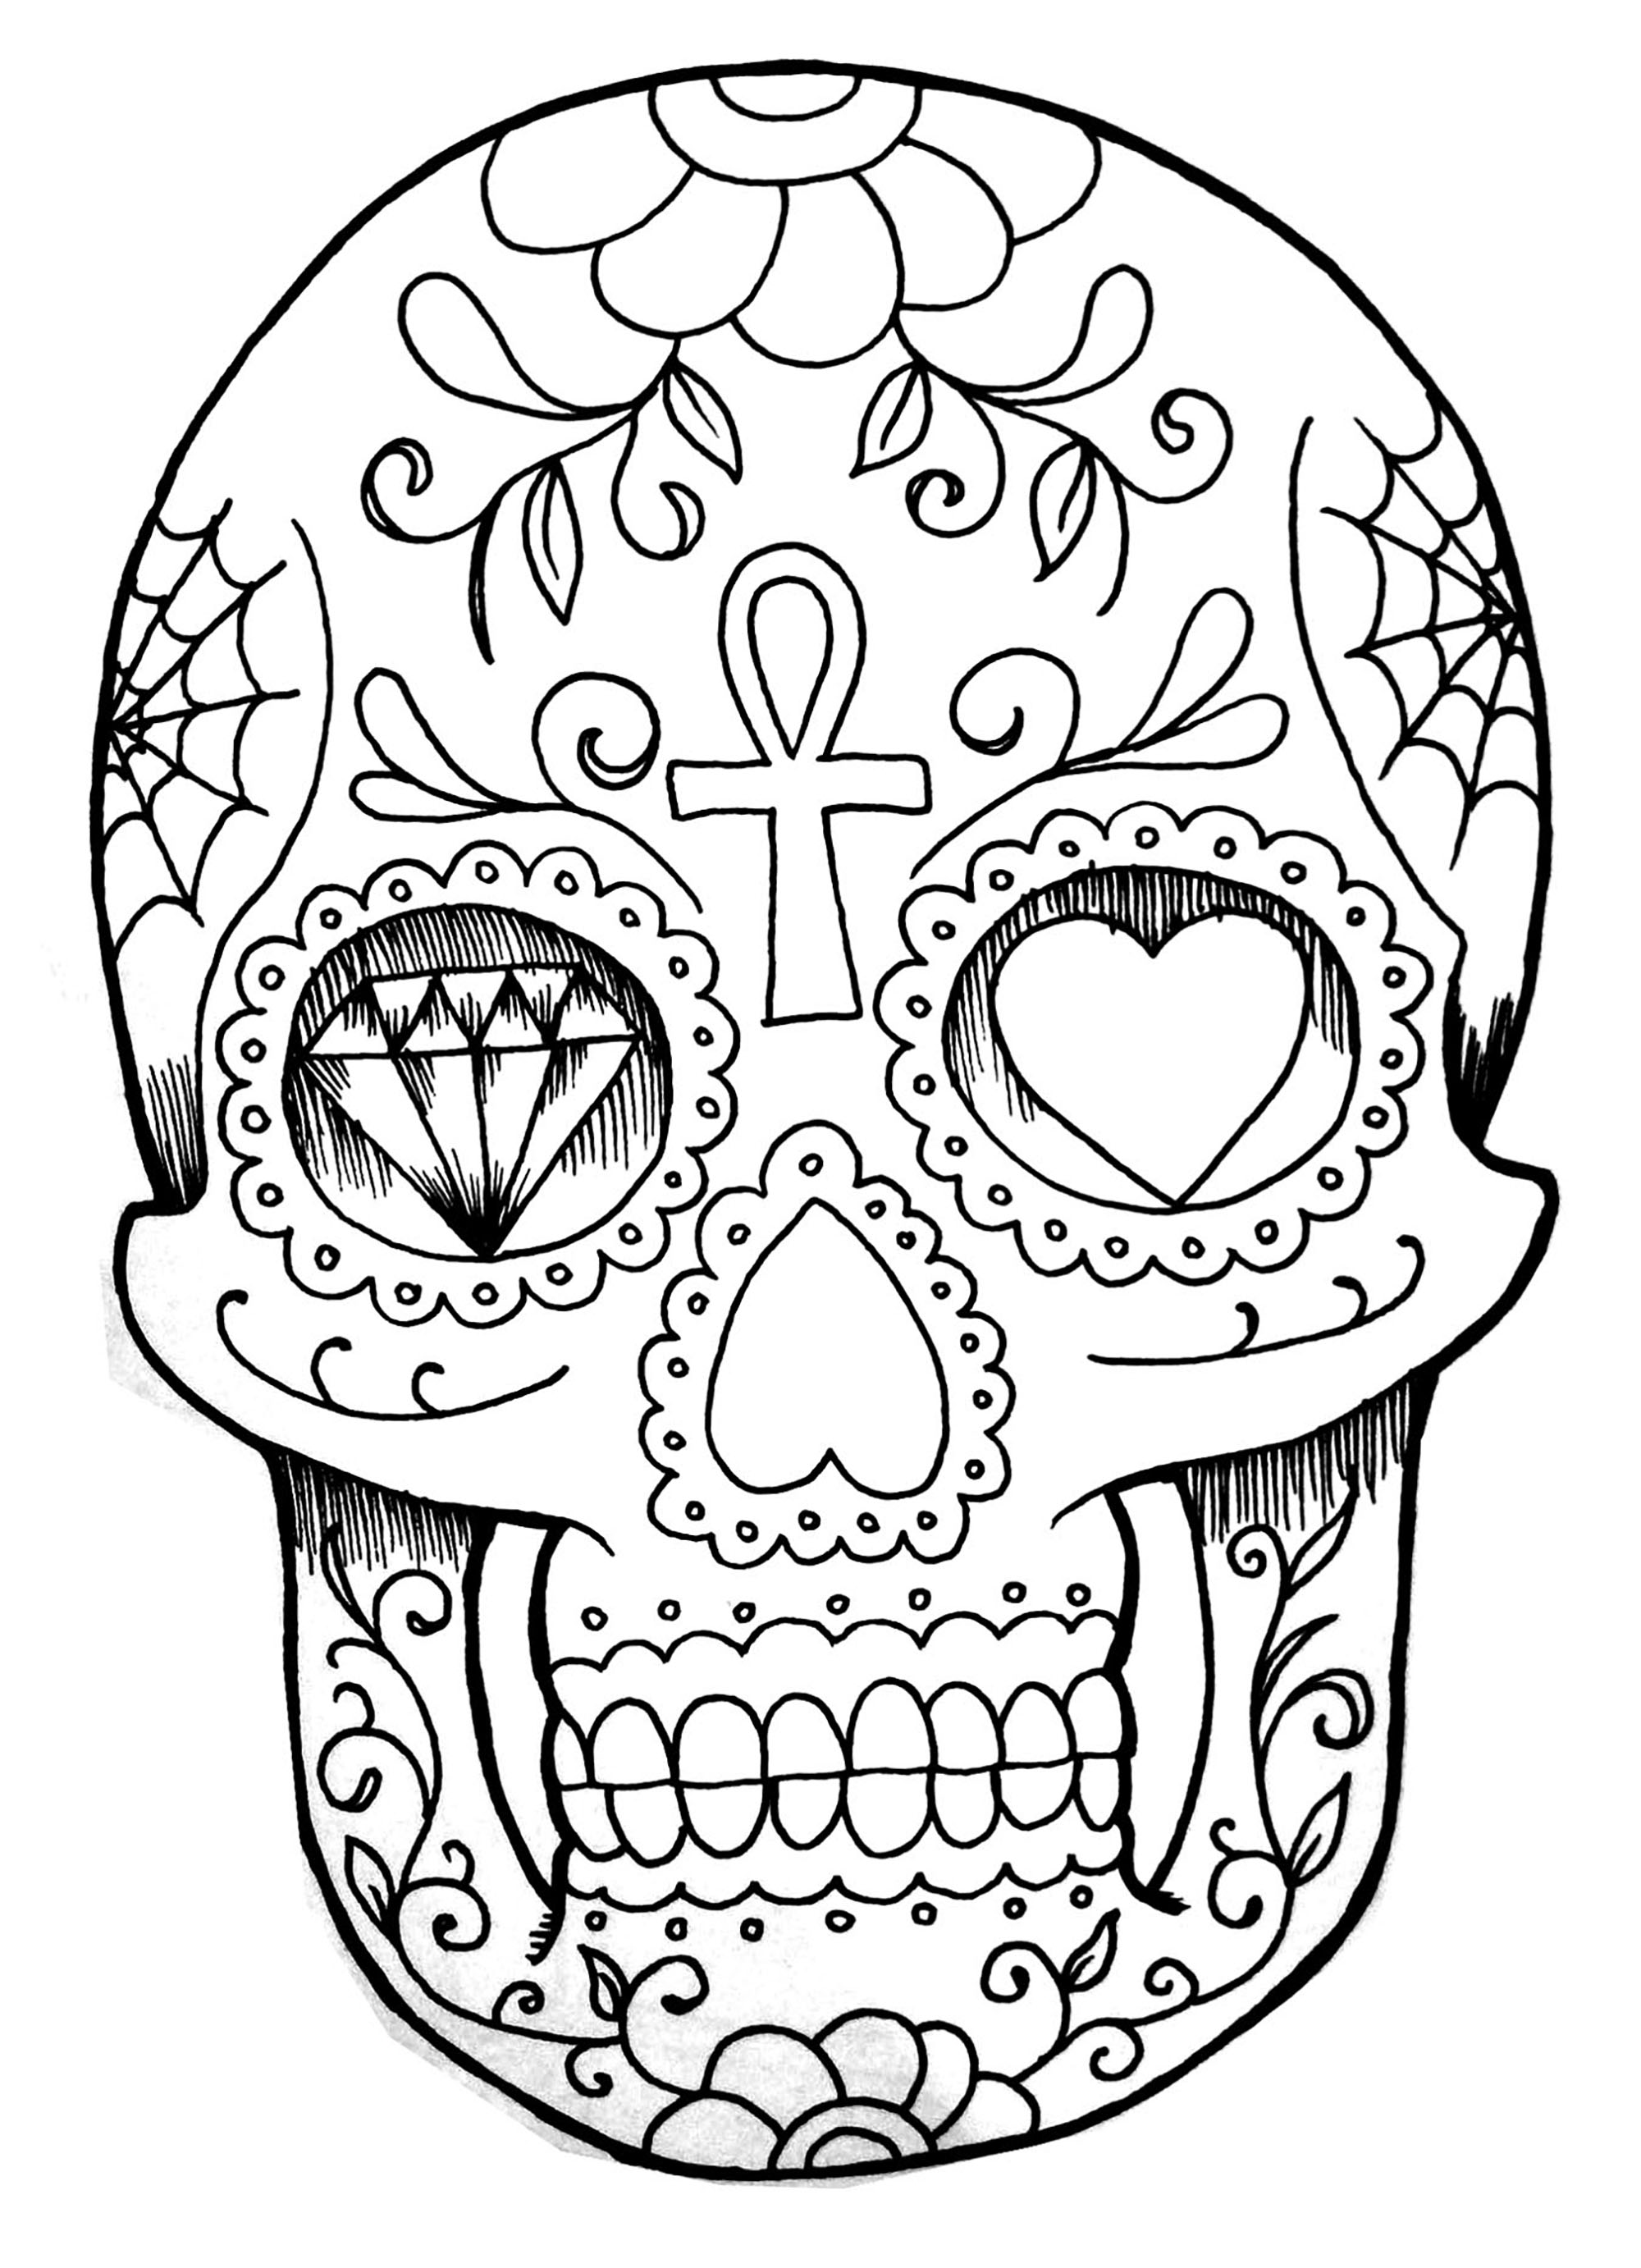 - Skull - Coloring Pages For Adults